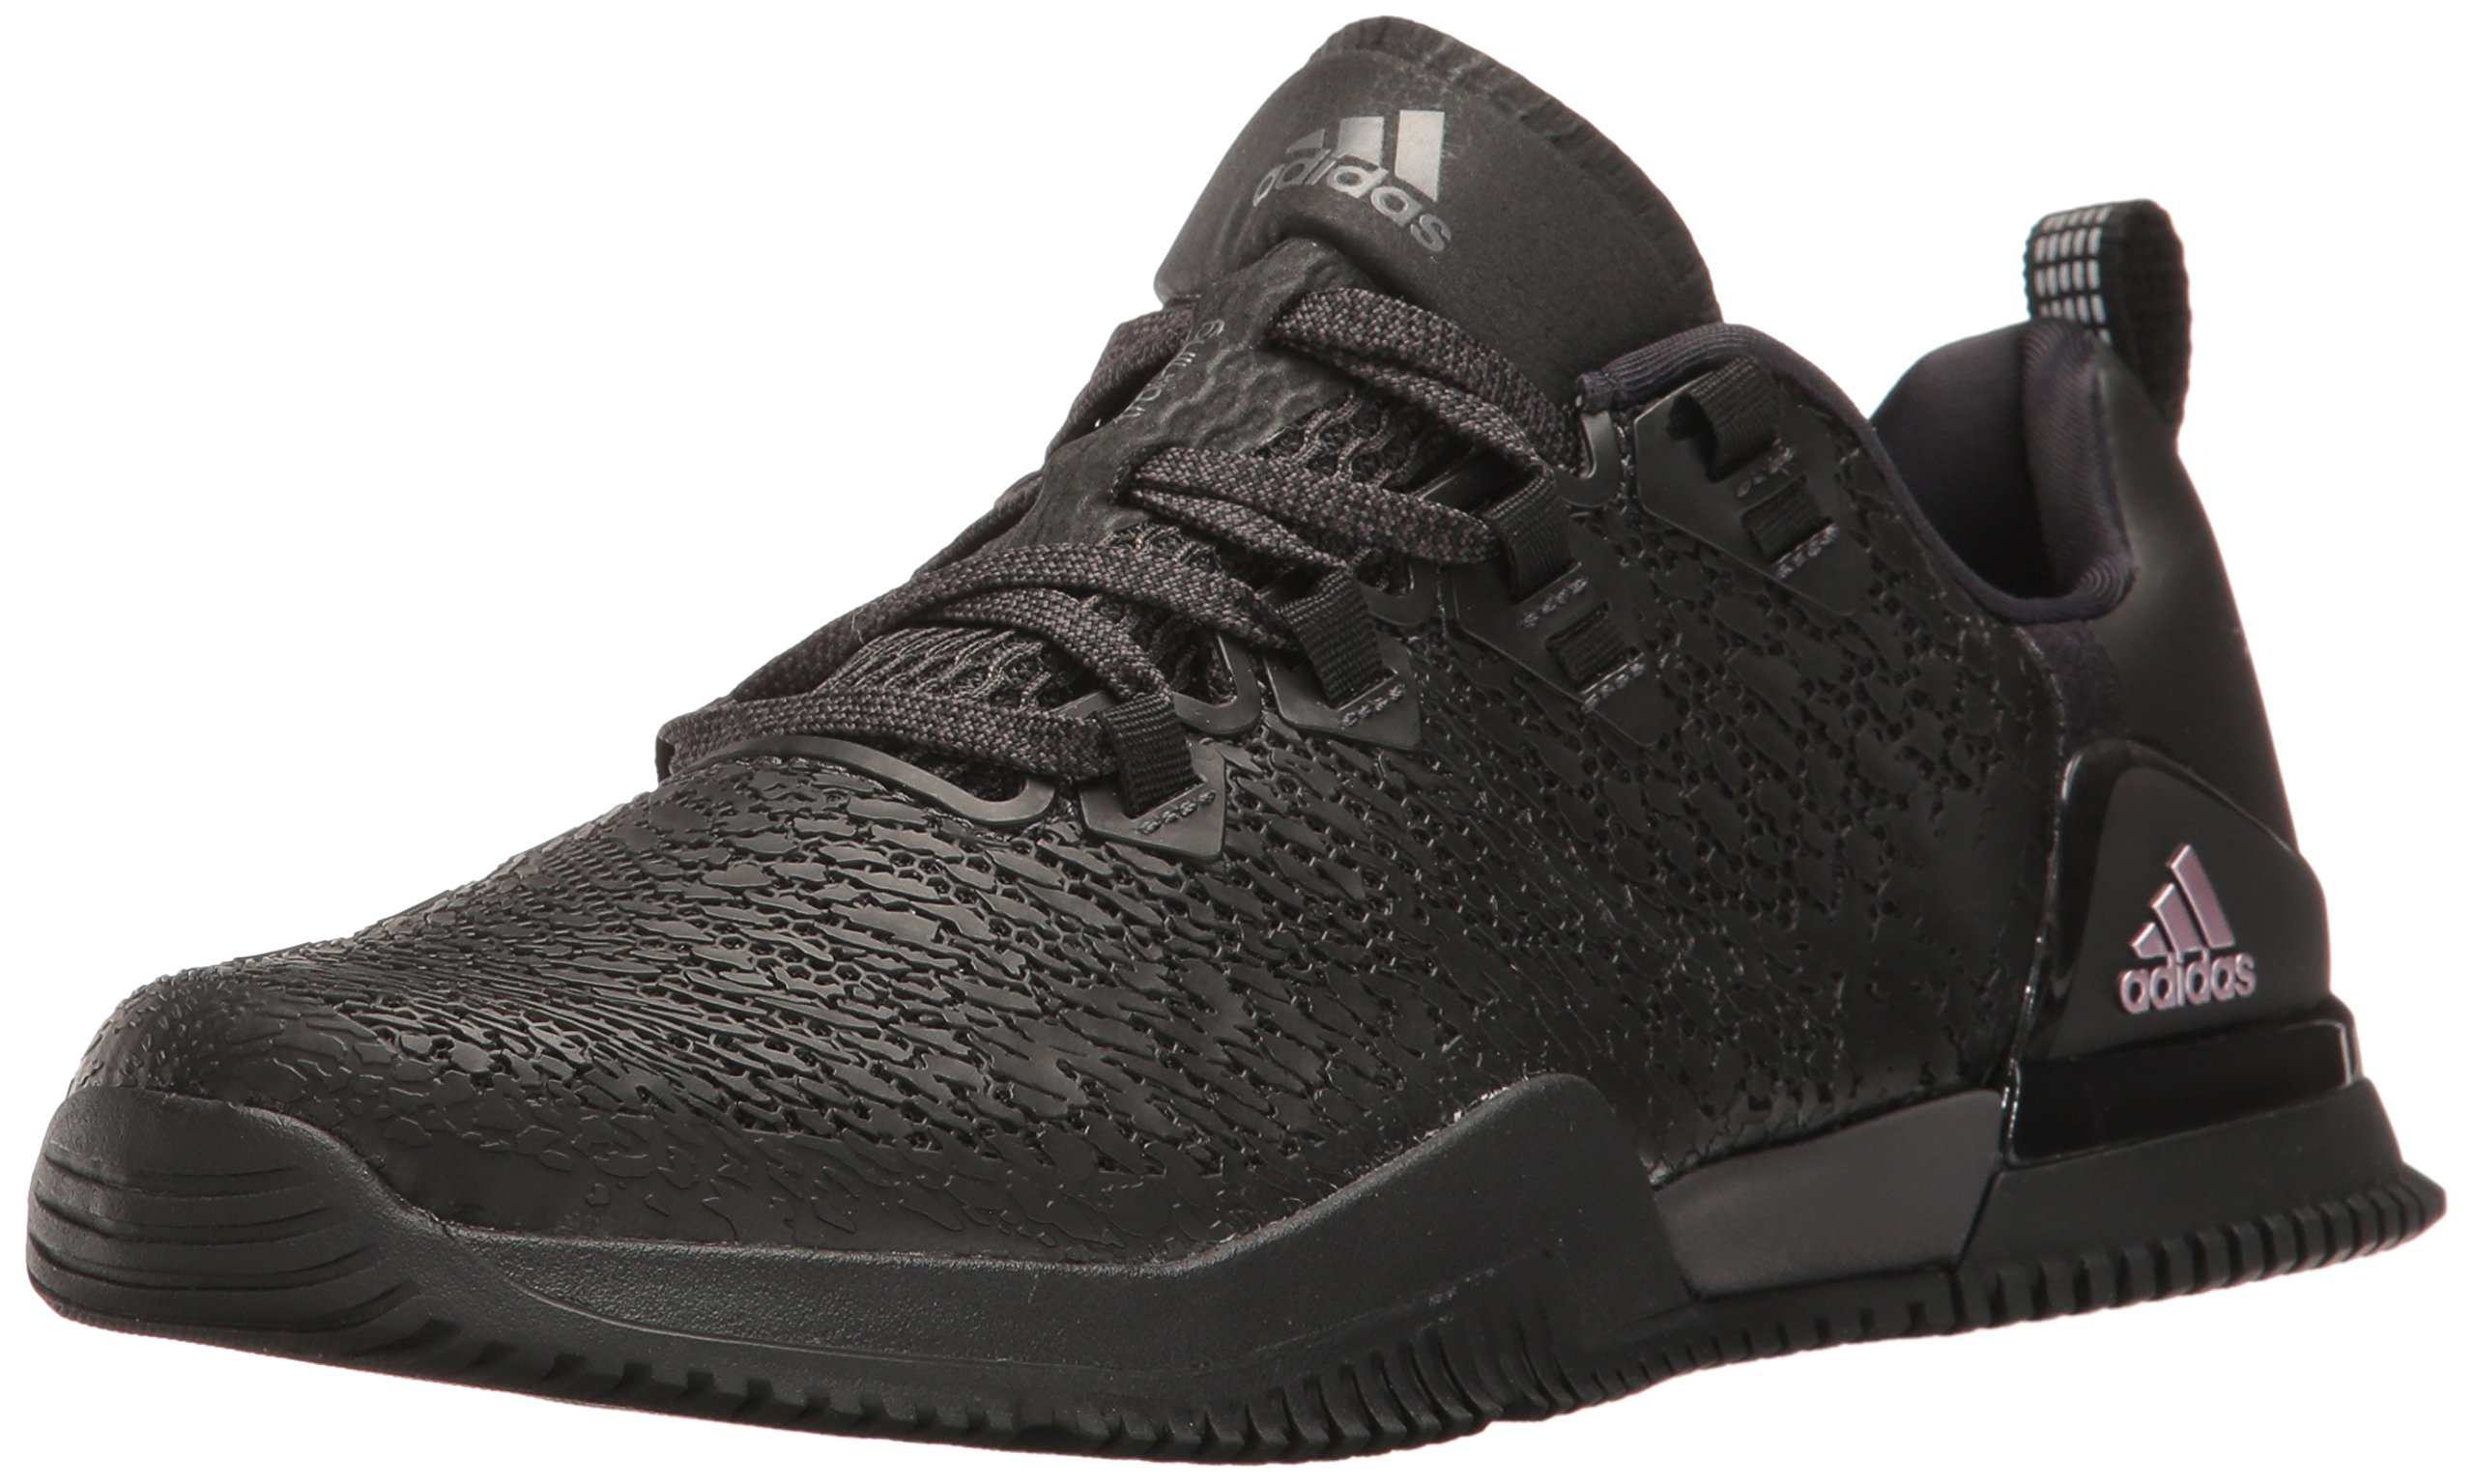 adidas Performance Women's Shoes | Crazypower TR Cross-Trainer, Utility Black/Vapour Grey/Black, (7 M US)